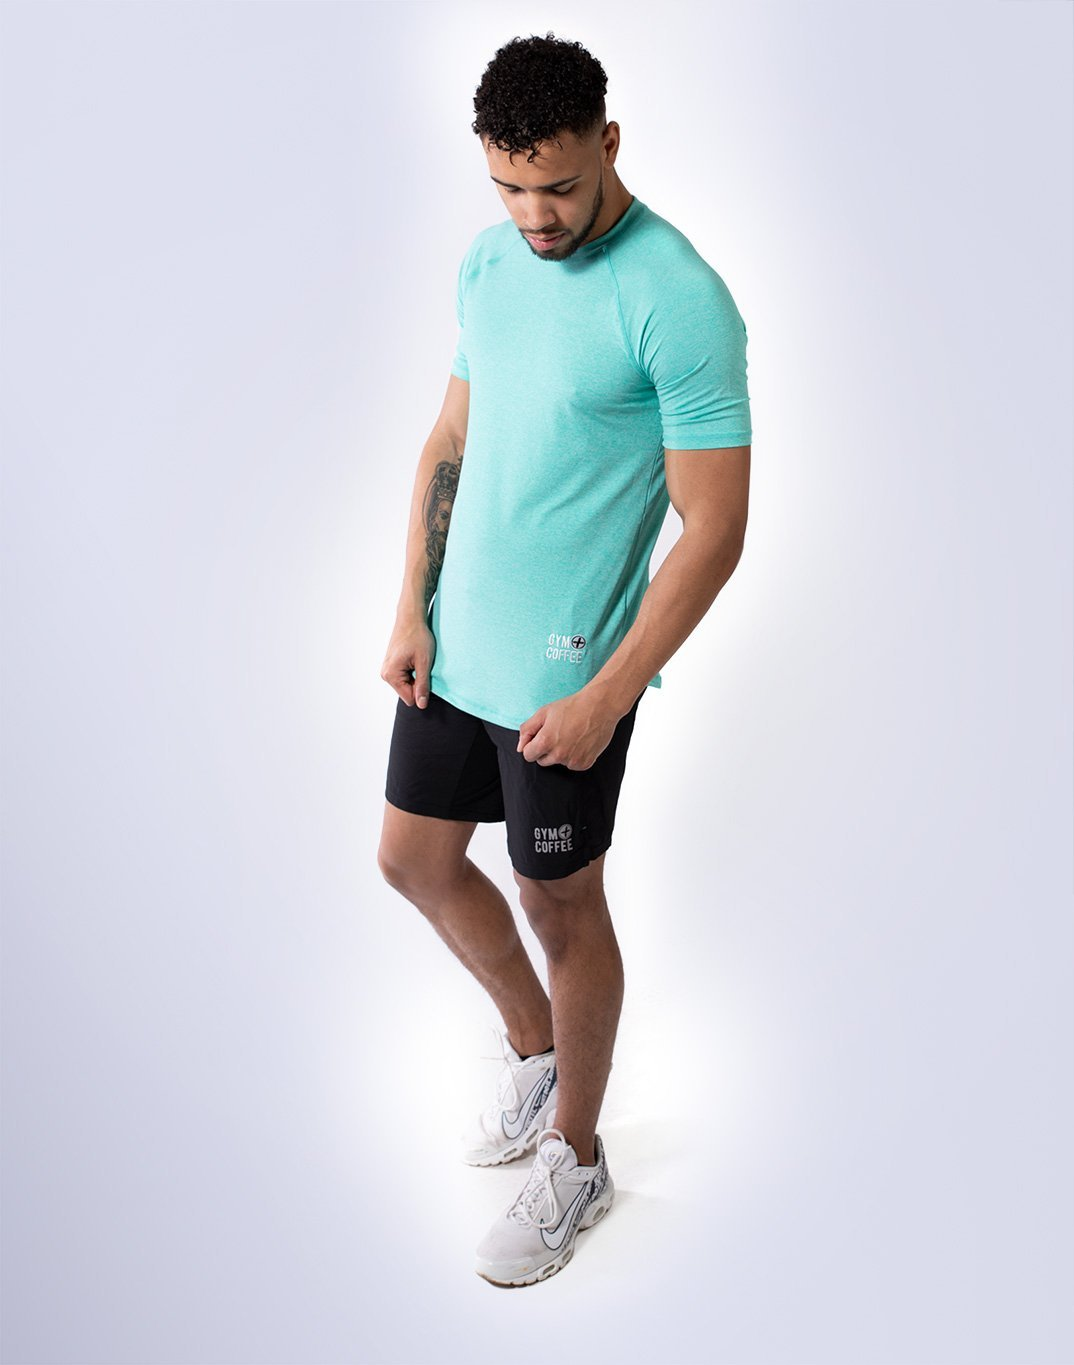 Gym Plus Coffee T-Shirt Men's Raglan Tech in Aqua Designed in Ireland